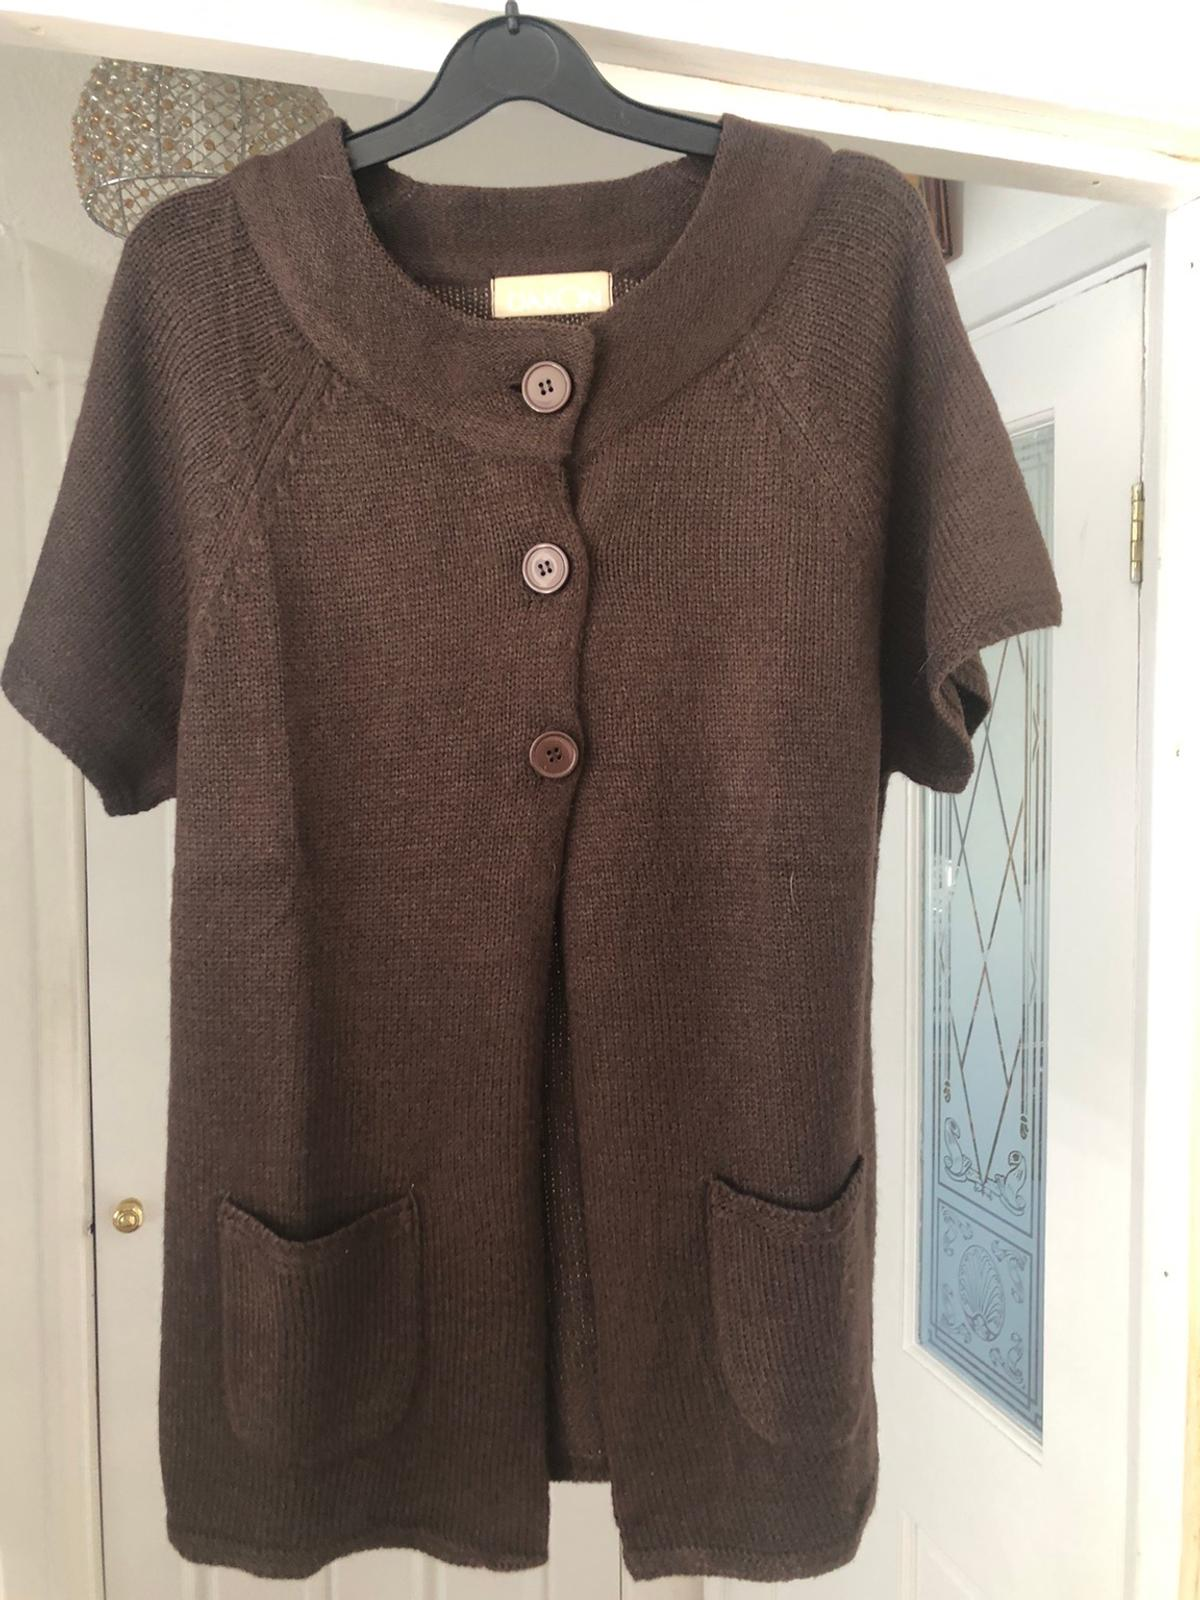 Brown short sleeved cardigan size 14/16 (621)